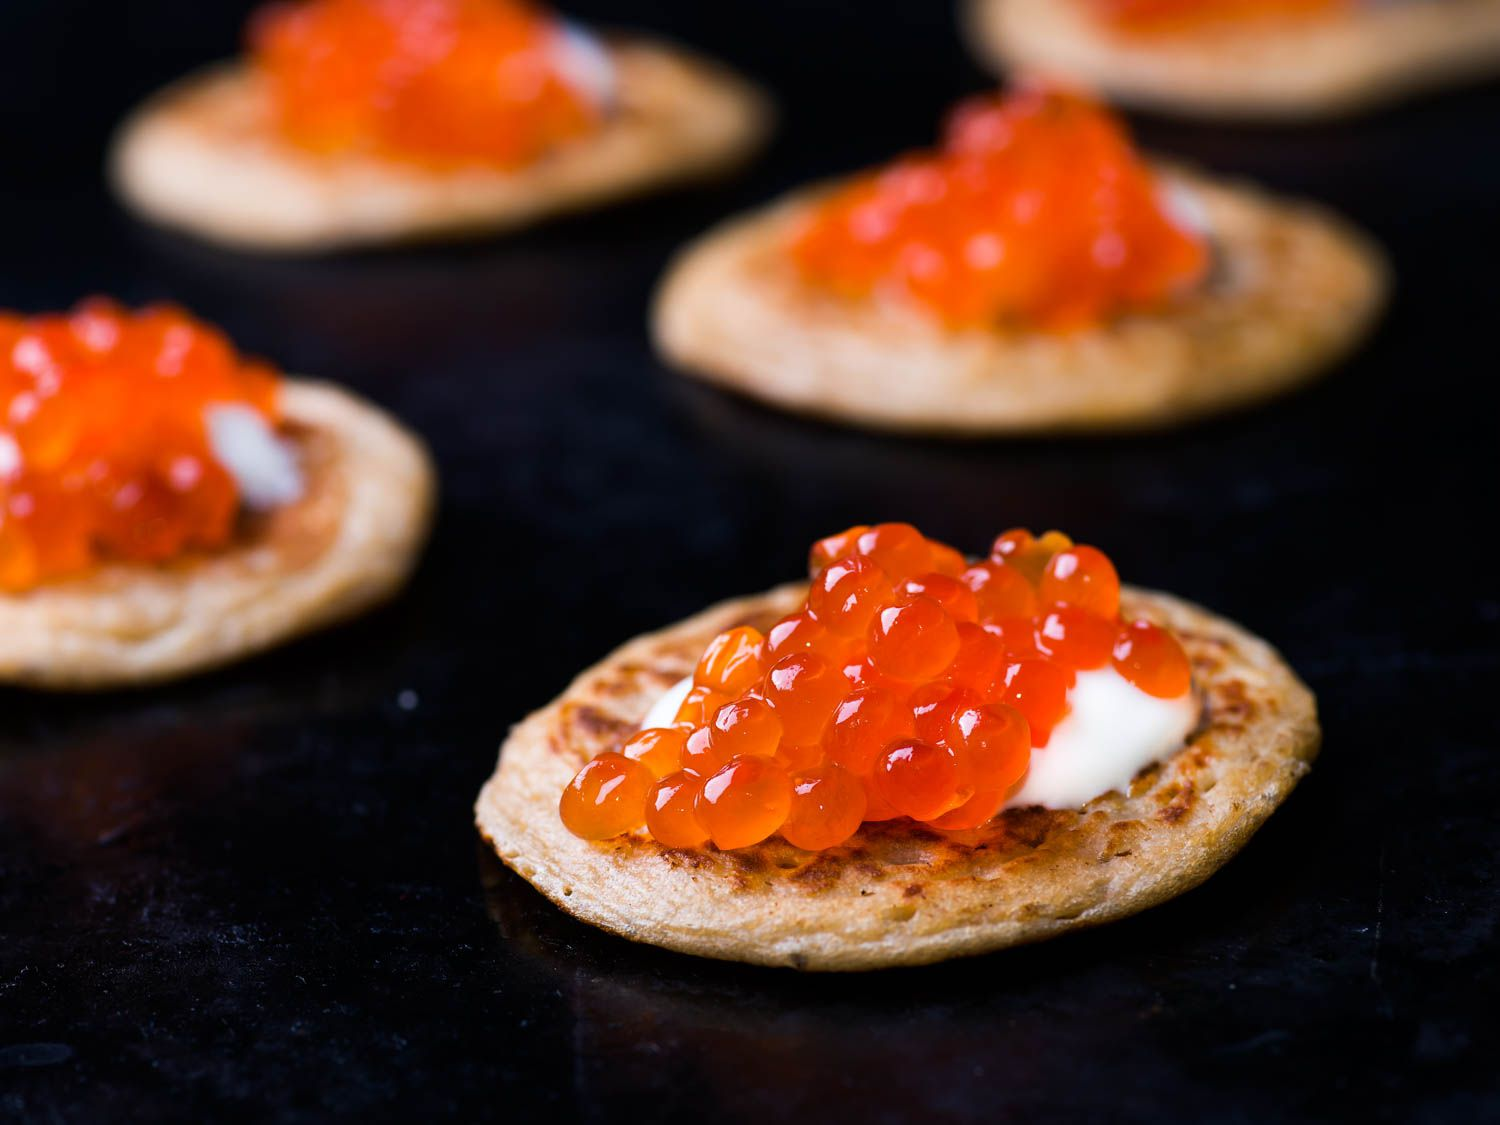 Blini topped with sour cream and caviar.